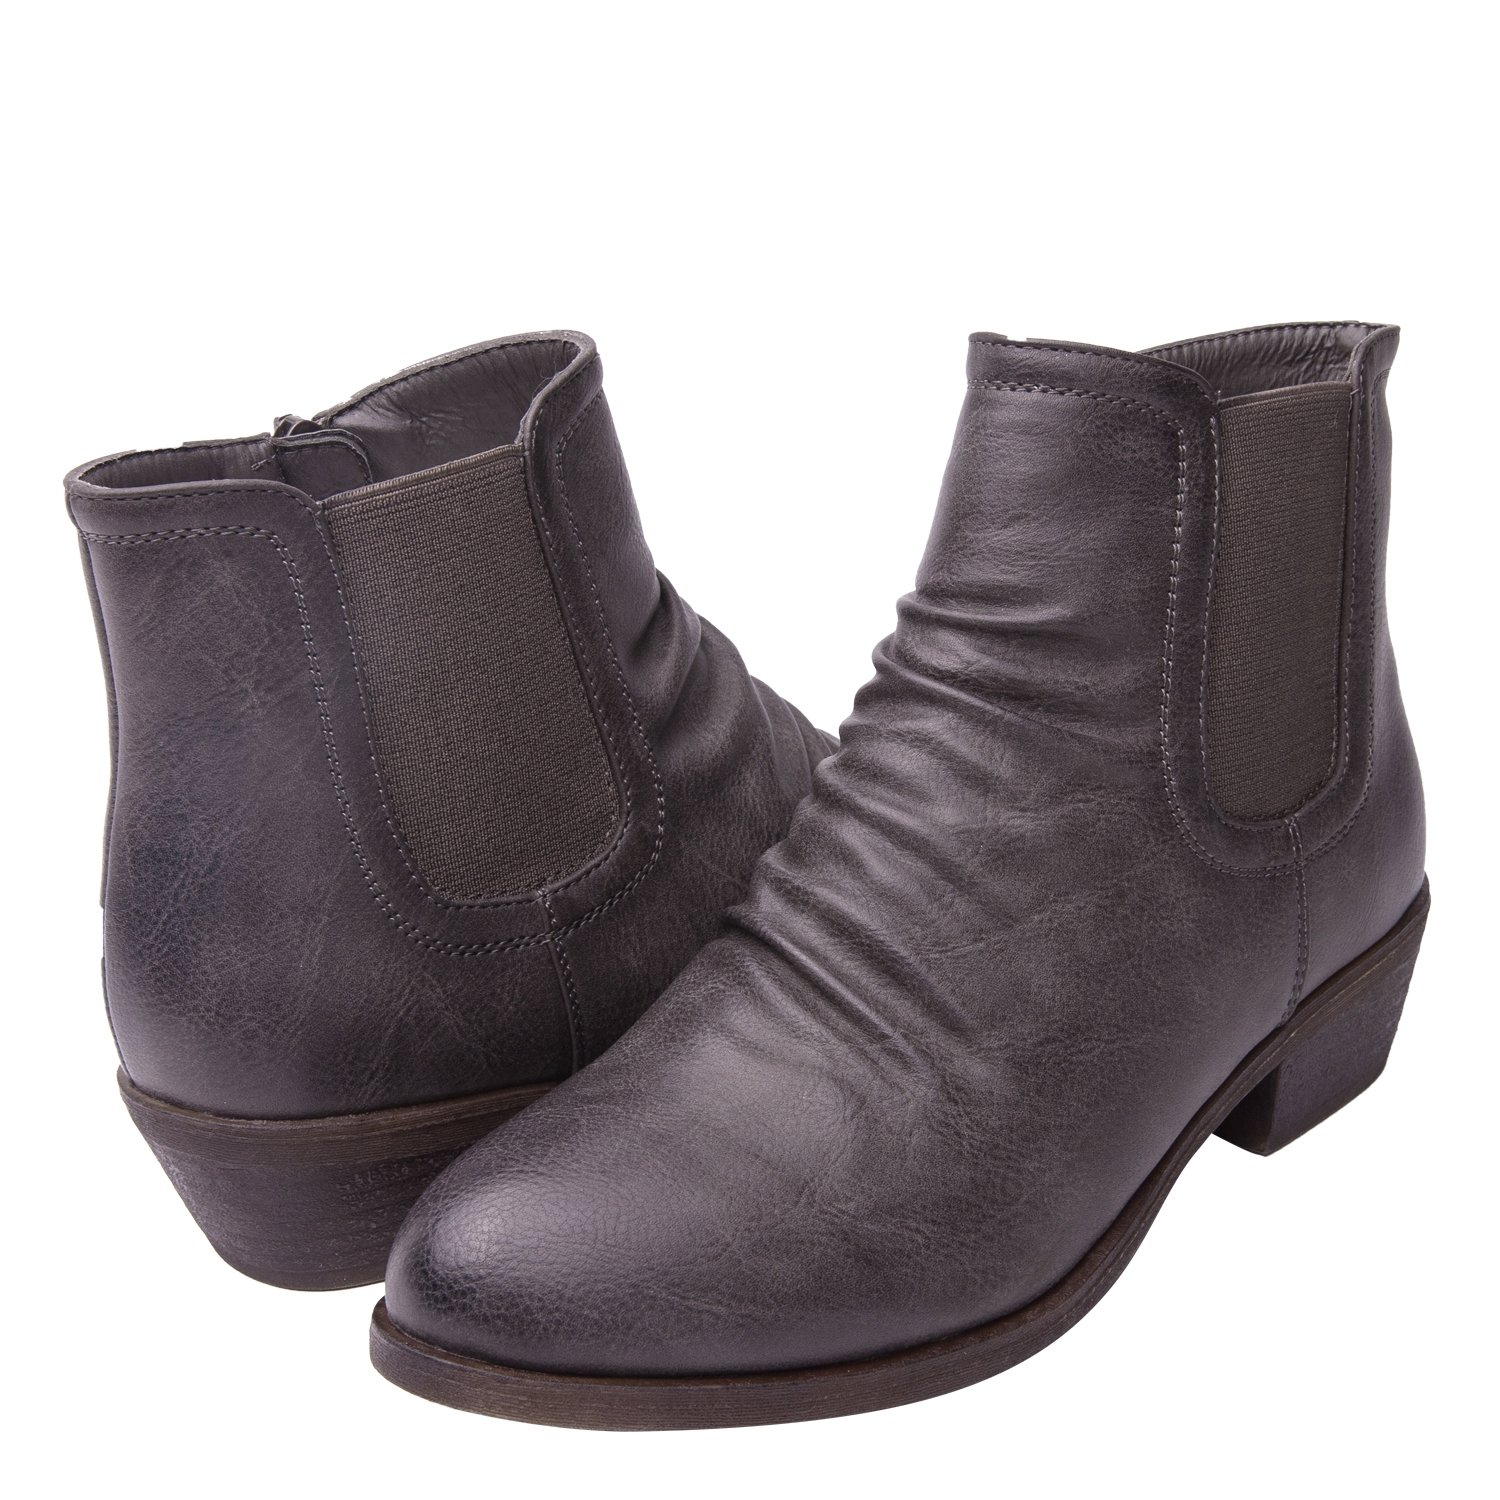 Global Kadimaya16yy09 Cyber Win Sales Women's Boots Dealsamp; Monday qzUjSVGpLM